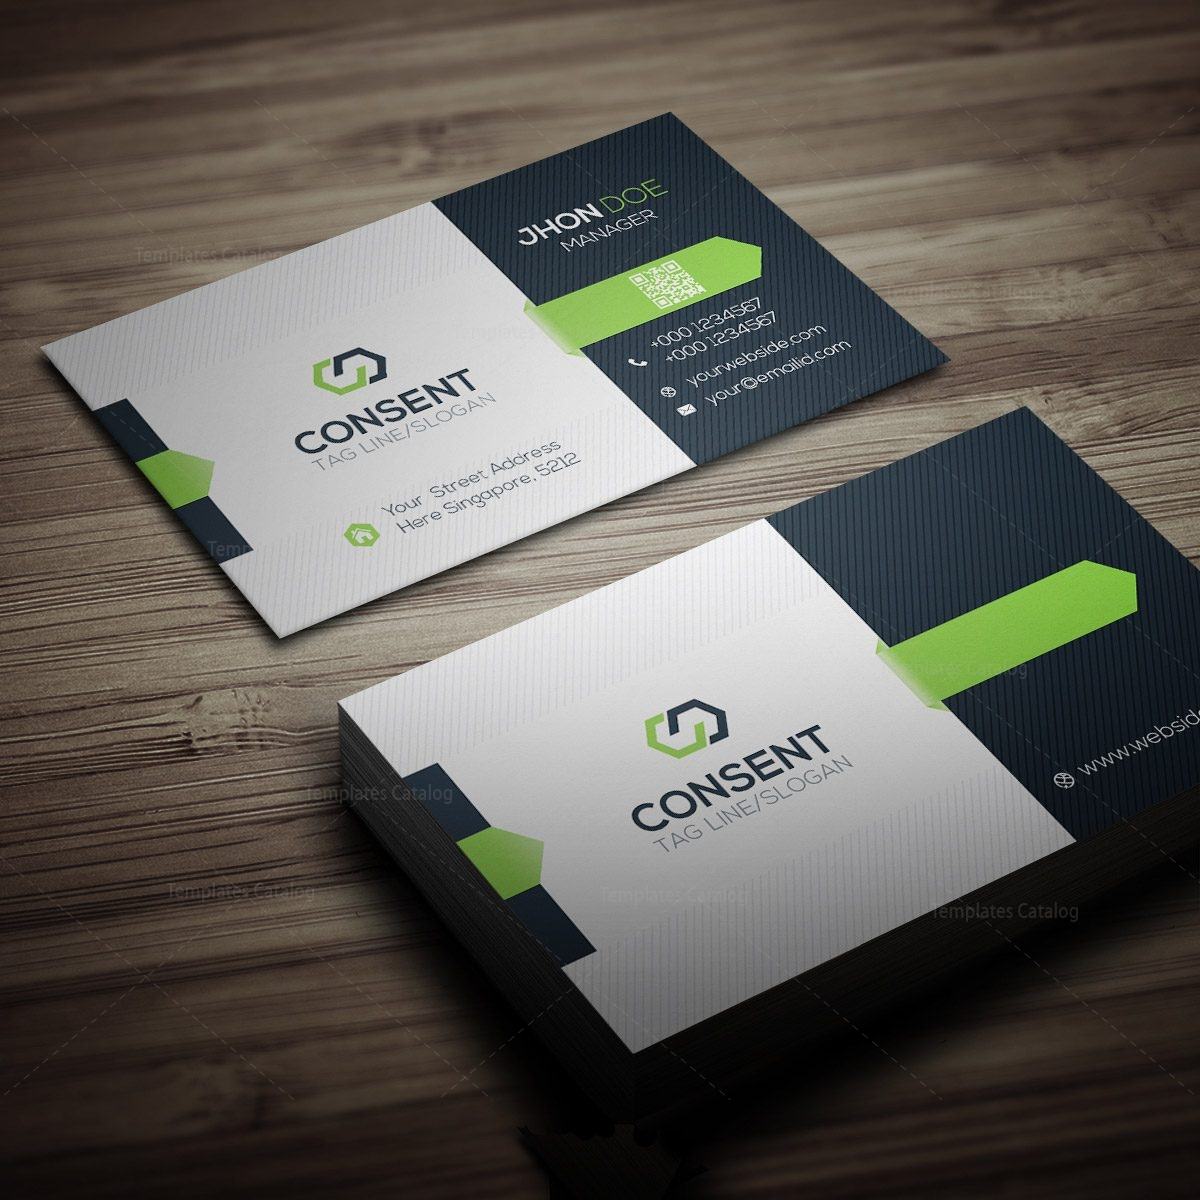 Consent business card template 000275 template catalog for Photo business card template